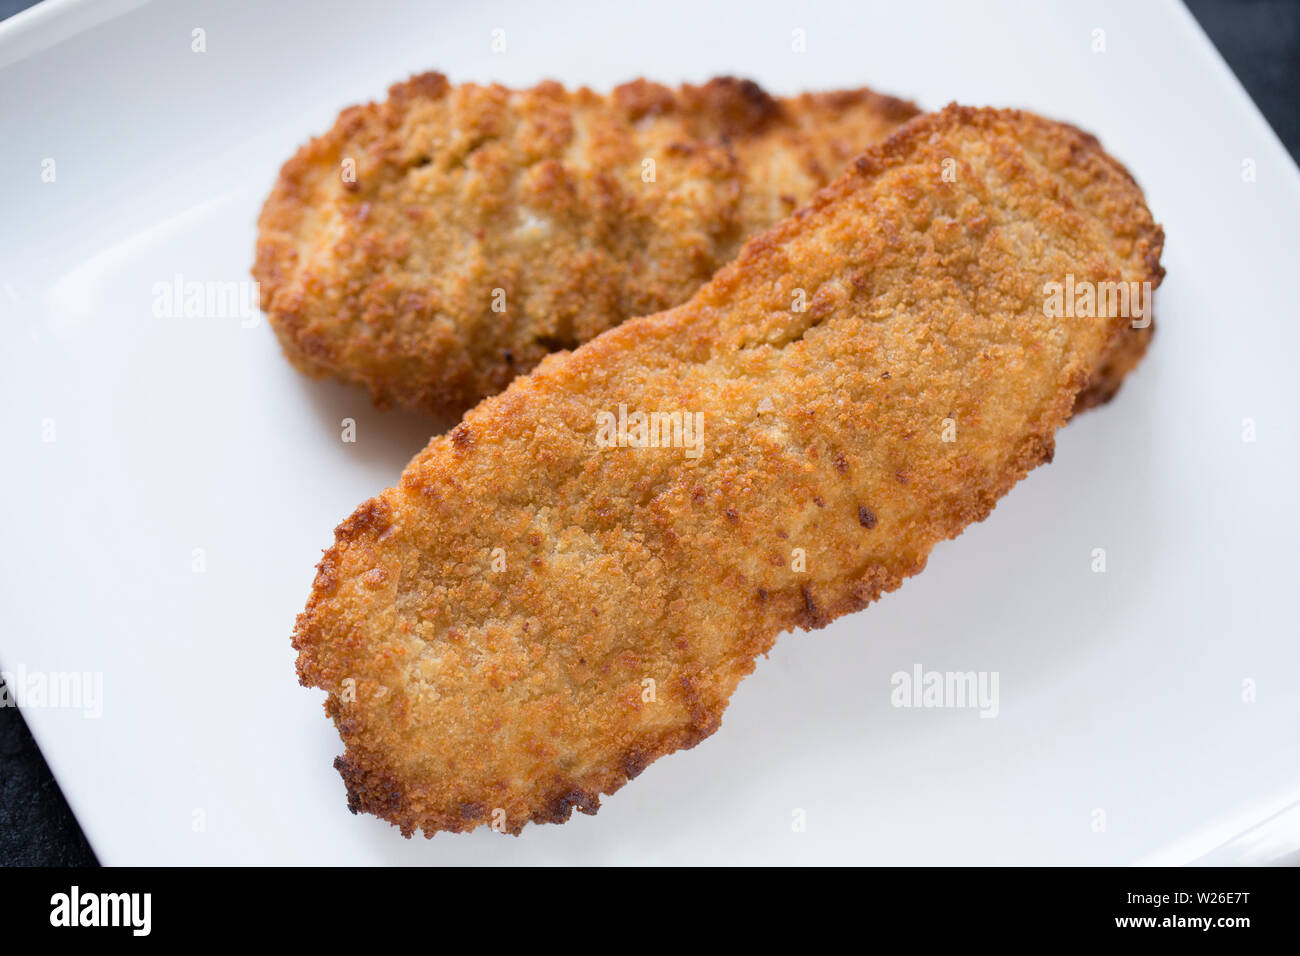 Two breaded Alaskan pollock fillets,Theragra chalcogramma, bought from a supermarket in the UK and served on a white plate. England UK GB - Stock Image